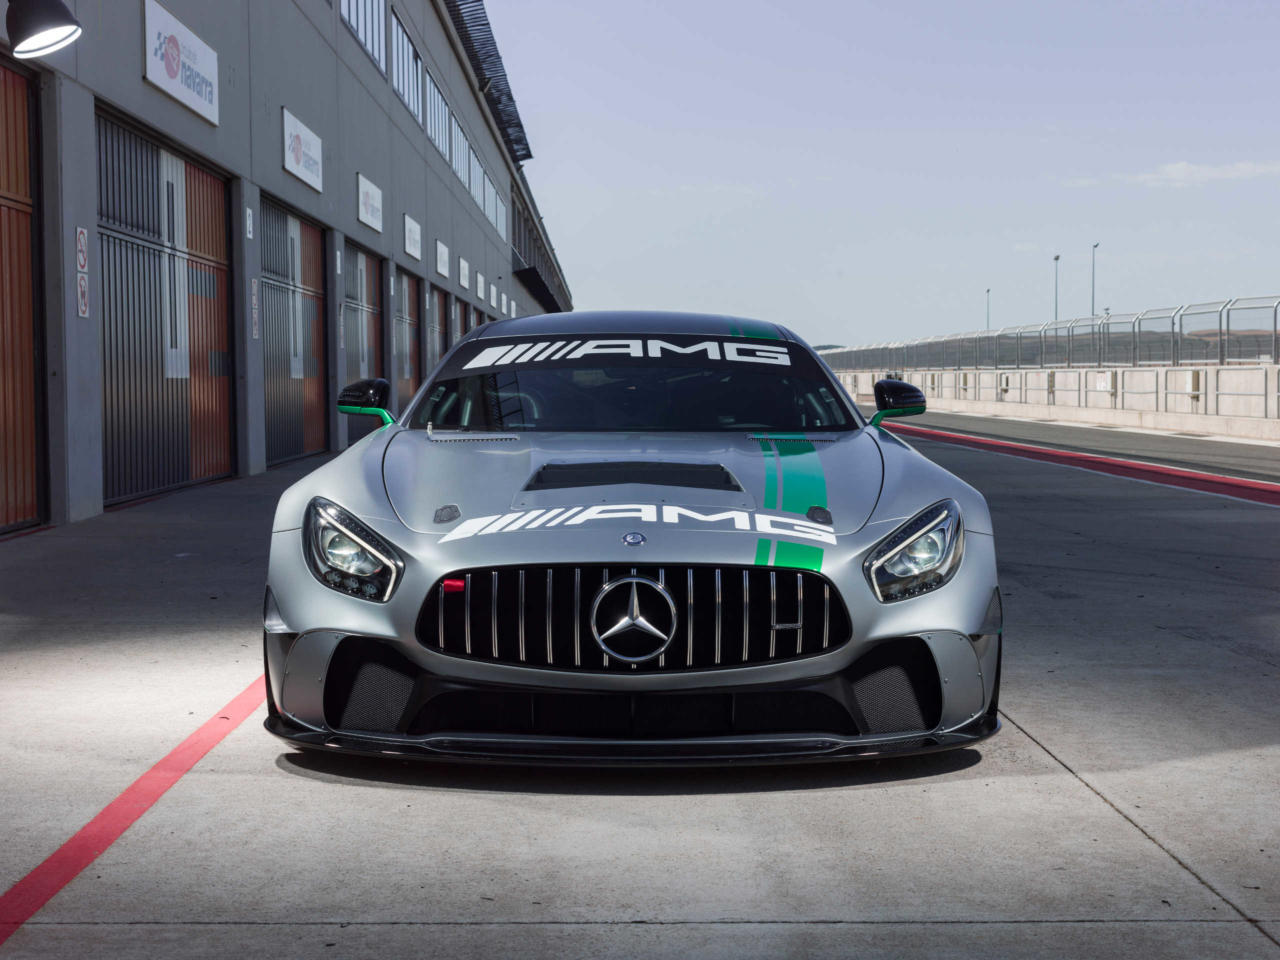 Mercedes Amg Gt4 >> Mercedes Amg Gt4 Because It Runs In The Family Mercedesblog